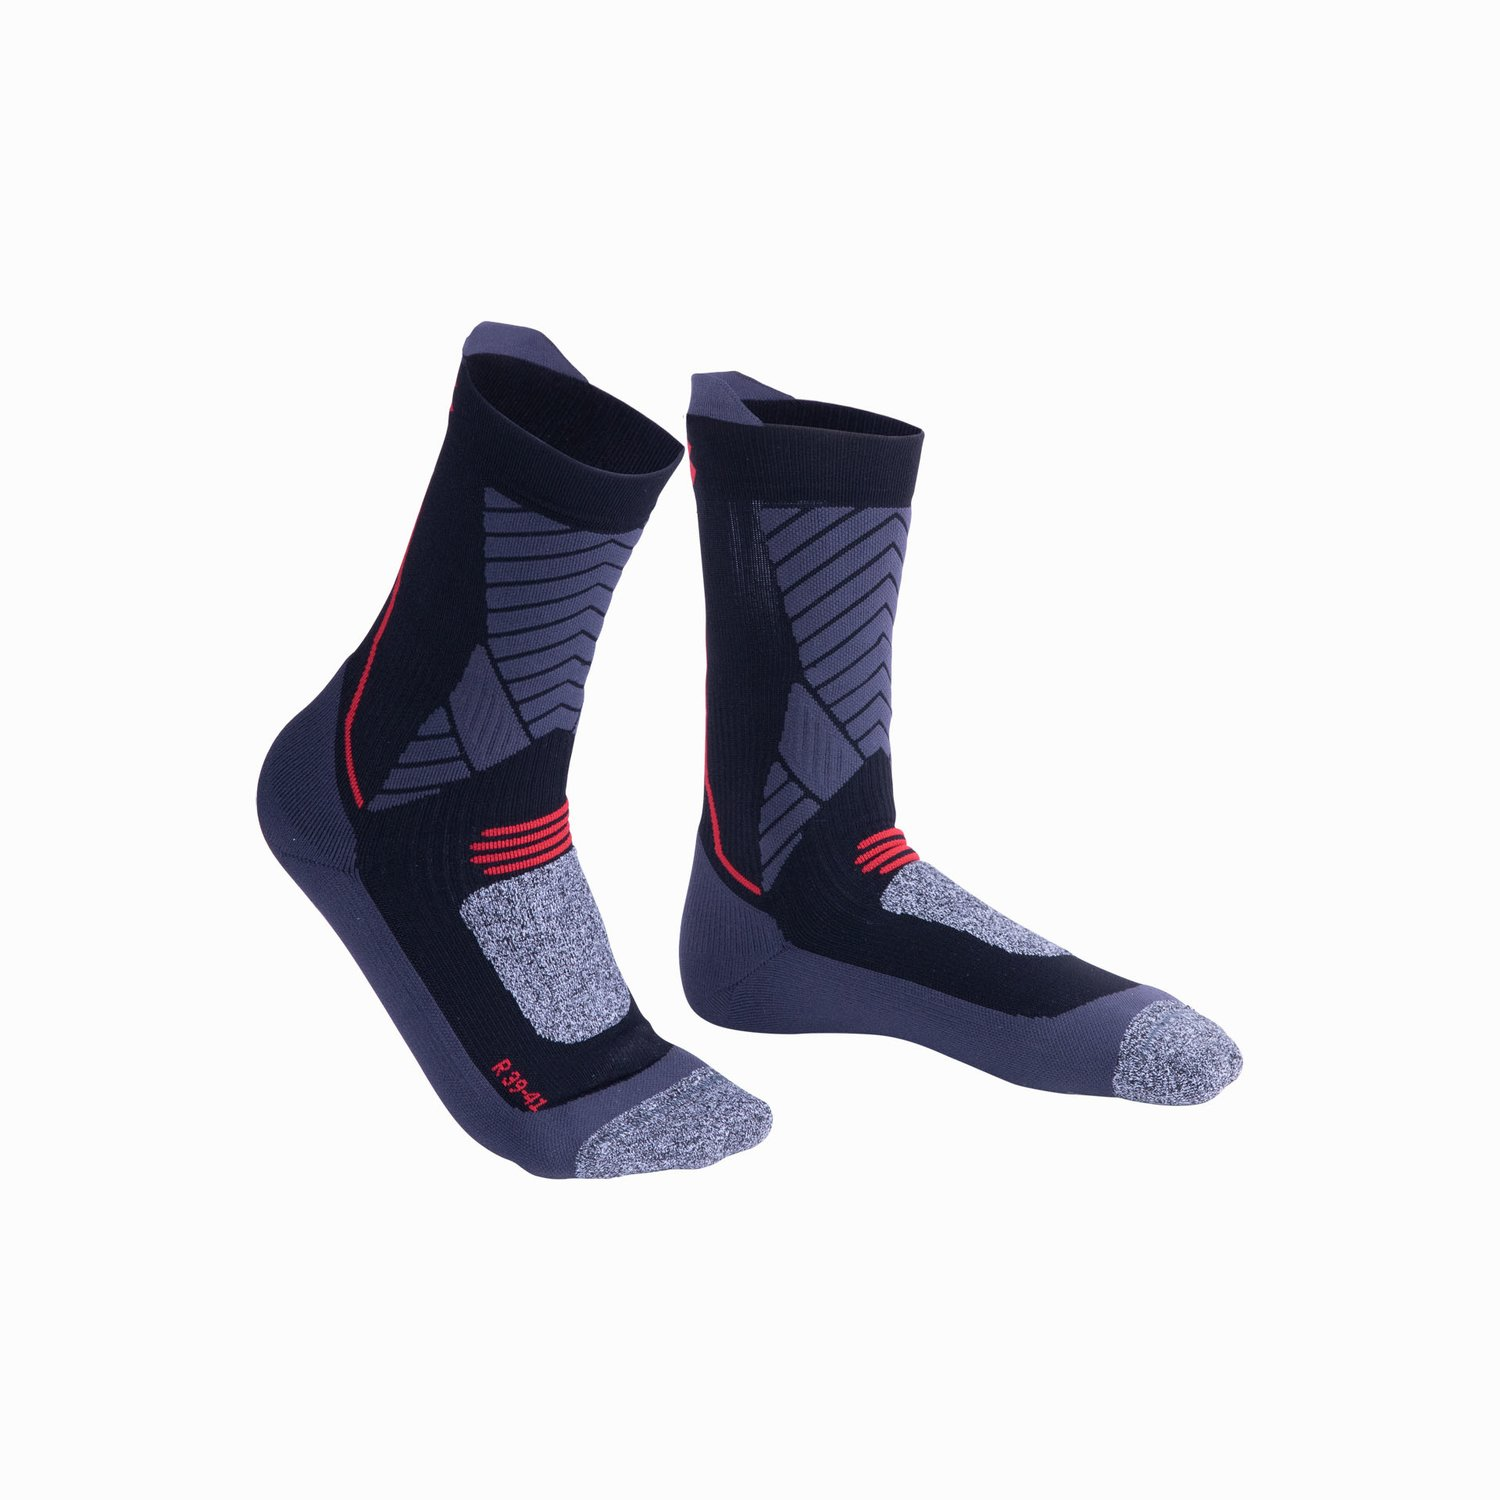 Kurzsocken Win-D Heat  - Black